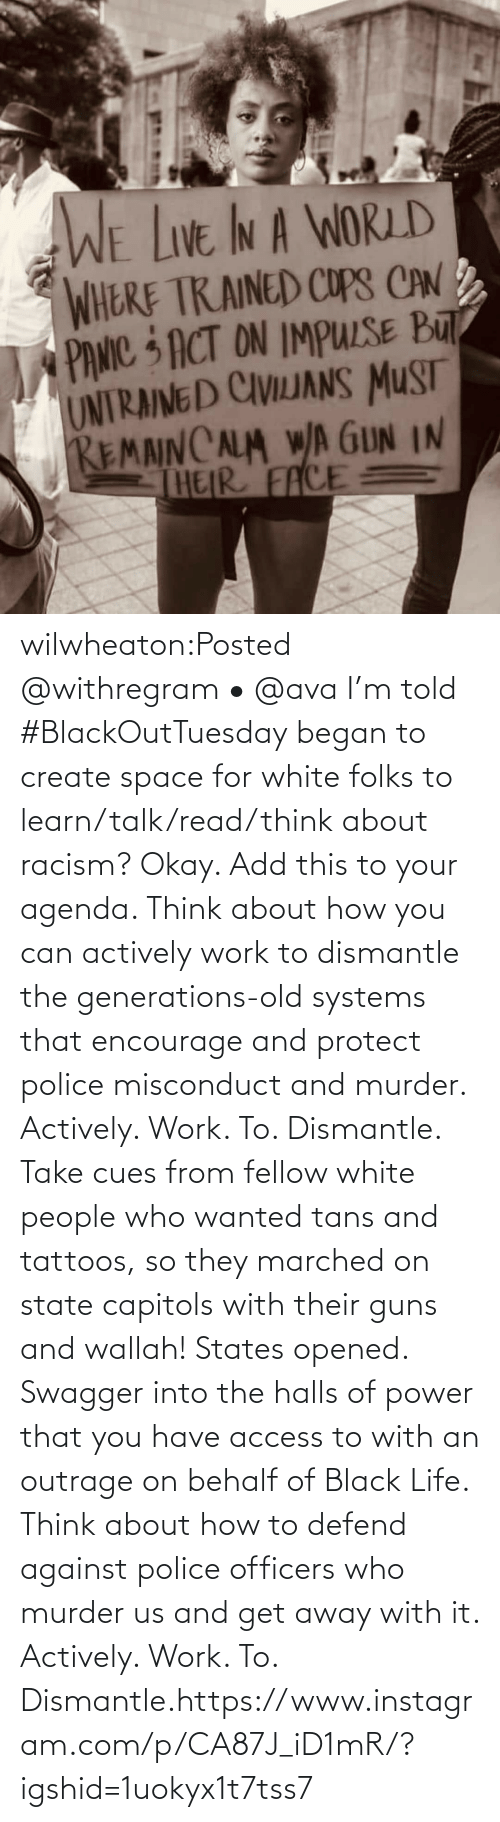 Talk: wilwheaton:Posted @withregram • @ava I'm told #BlackOutTuesday began to create space for white folks to learn/talk/read/think about racism? Okay. Add this to your agenda. Think about how you can actively work to dismantle the generations-old systems that encourage and protect police misconduct and murder. Actively. Work. To. Dismantle. Take cues from fellow white people who wanted tans and tattoos, so they marched on state capitols with their guns and wallah! States opened. Swagger into the halls of power that you have access to with an outrage on behalf of Black Life. Think about how to defend against police officers who murder us and get away with it. Actively. Work. To. Dismantle.https://www.instagram.com/p/CA87J_iD1mR/?igshid=1uokyx1t7tss7